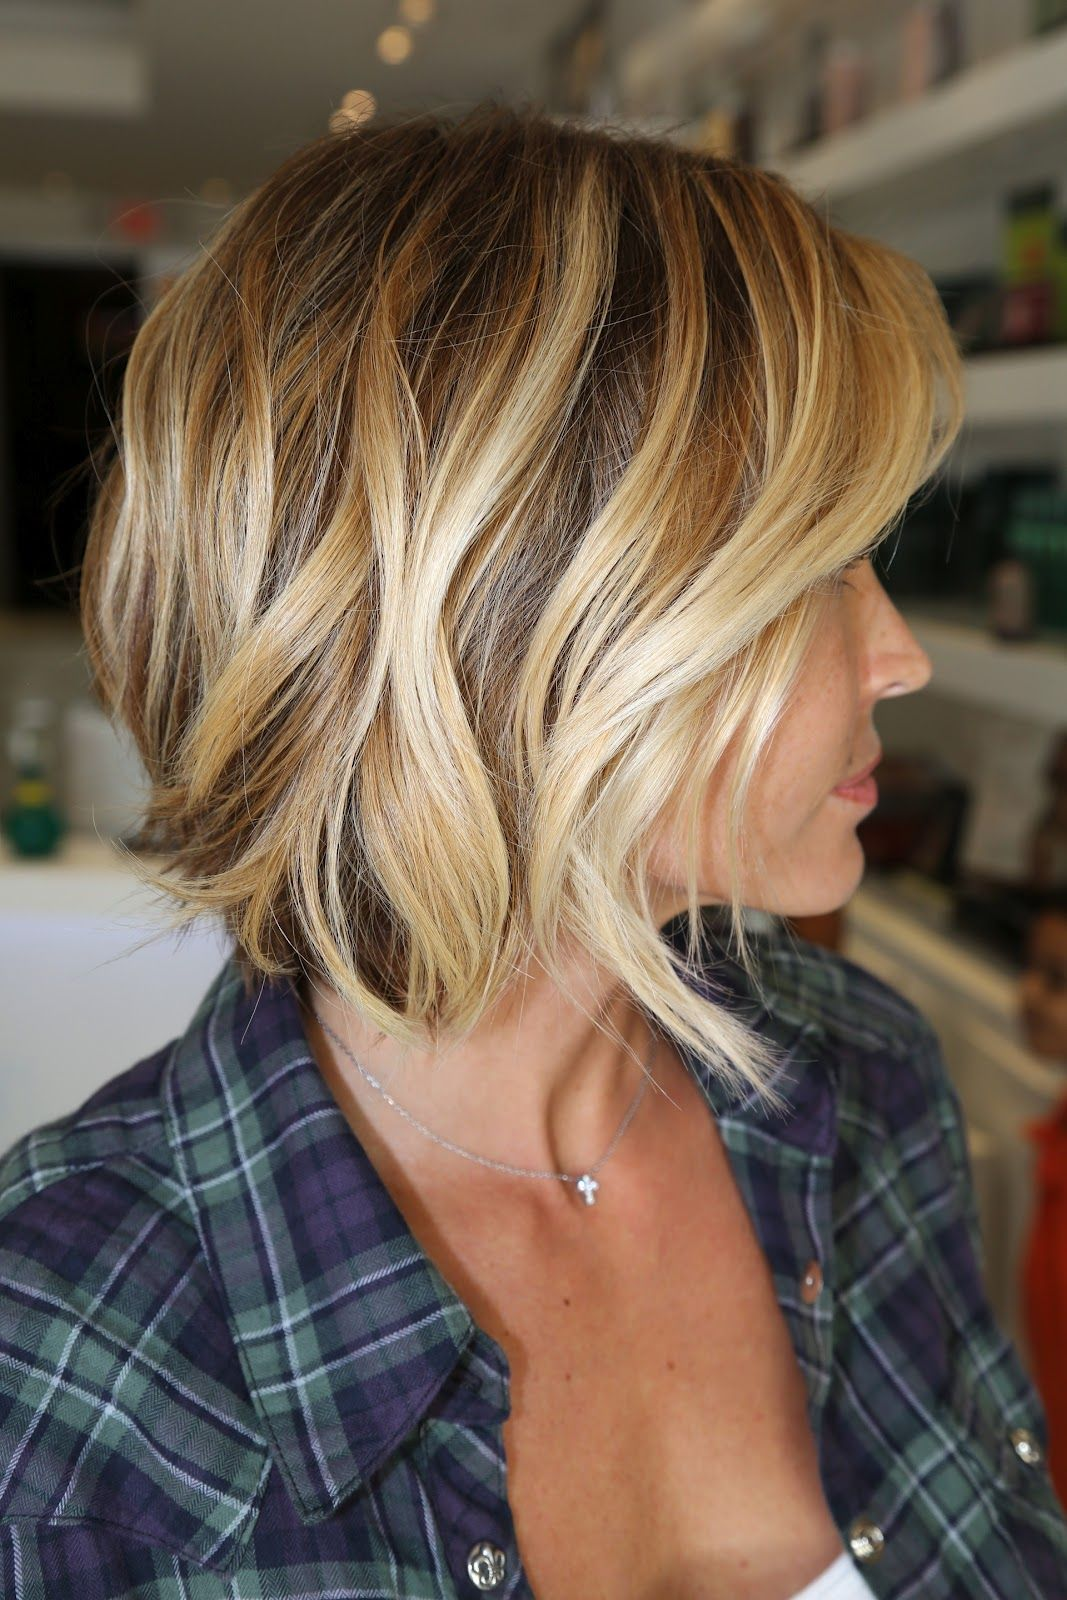 Cut style anh co tran misteranhcotran hair pinterest